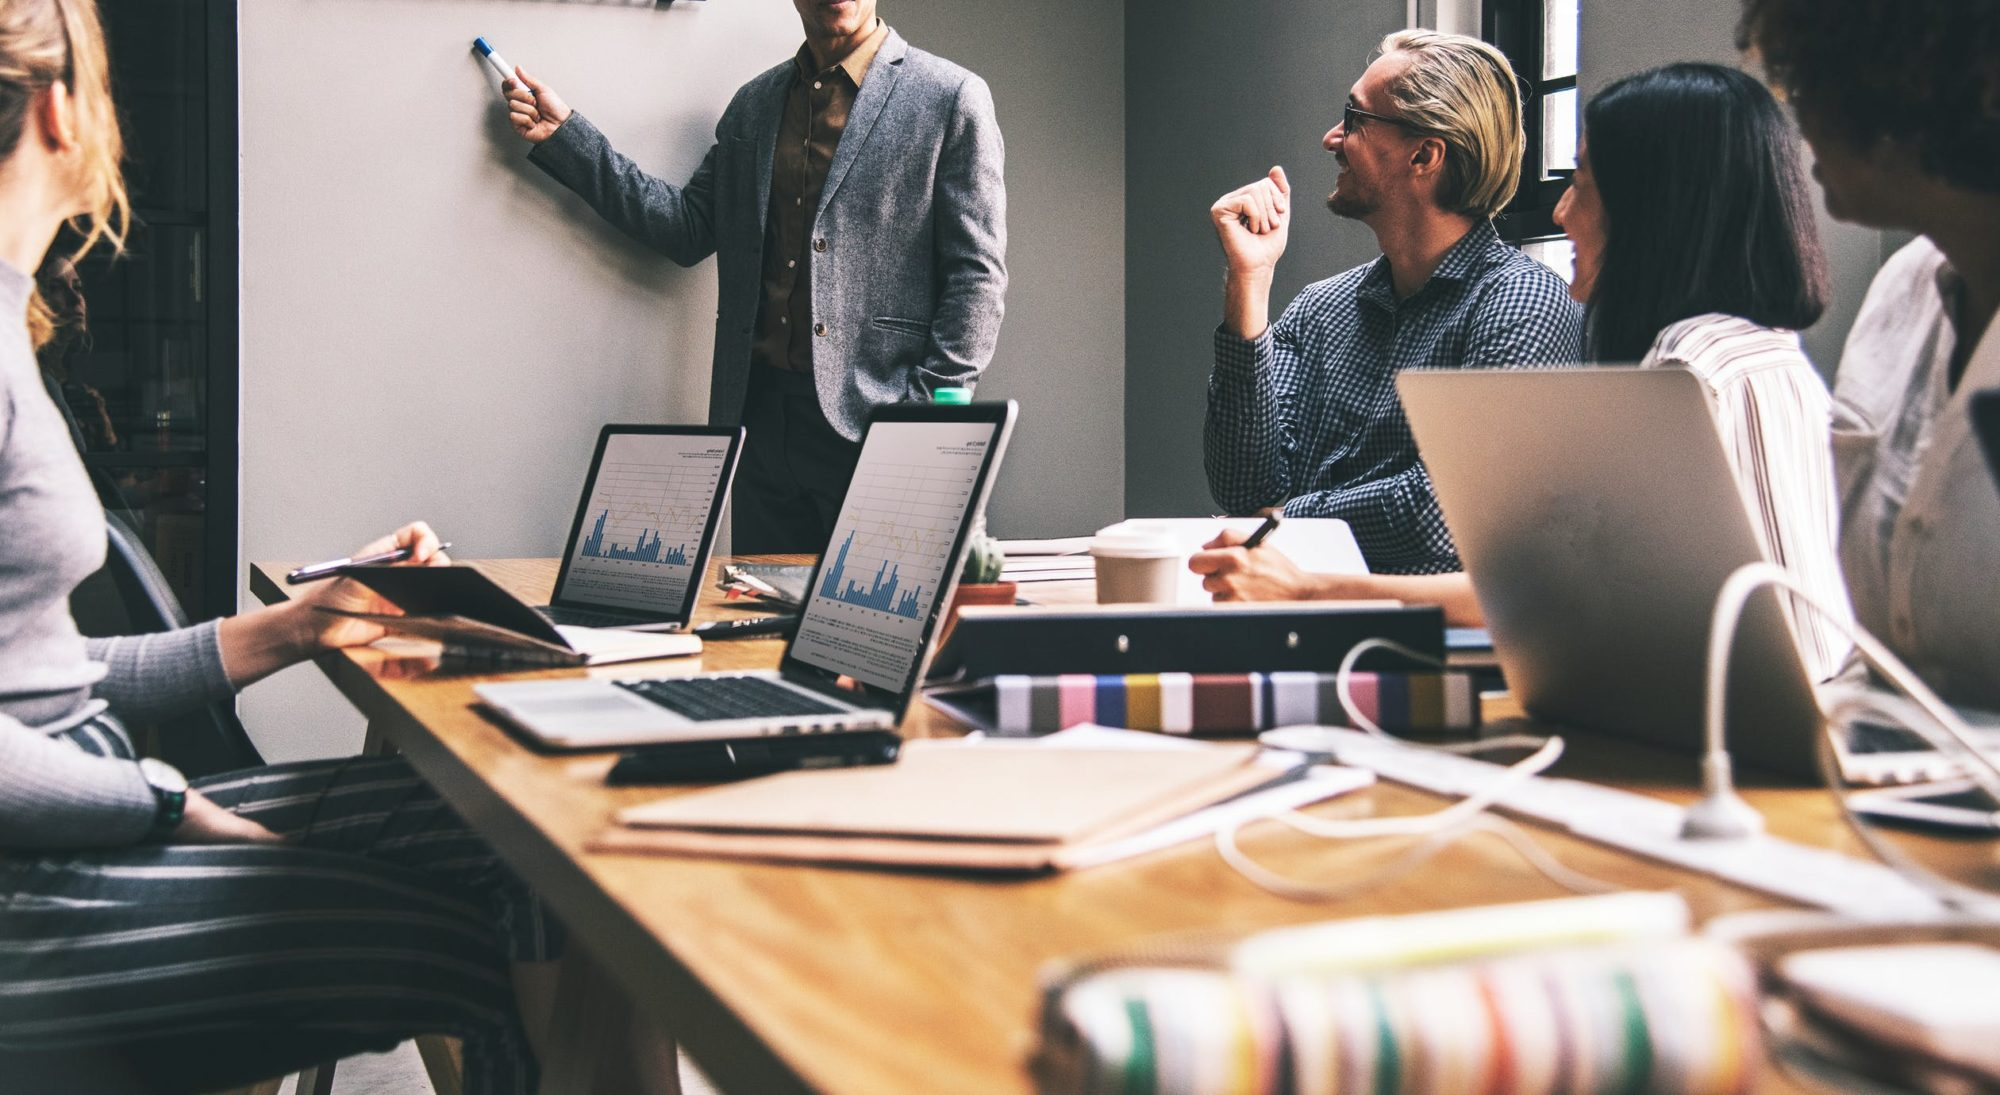 How Leaders Can Inspire the Strongest Performance From Their Employees